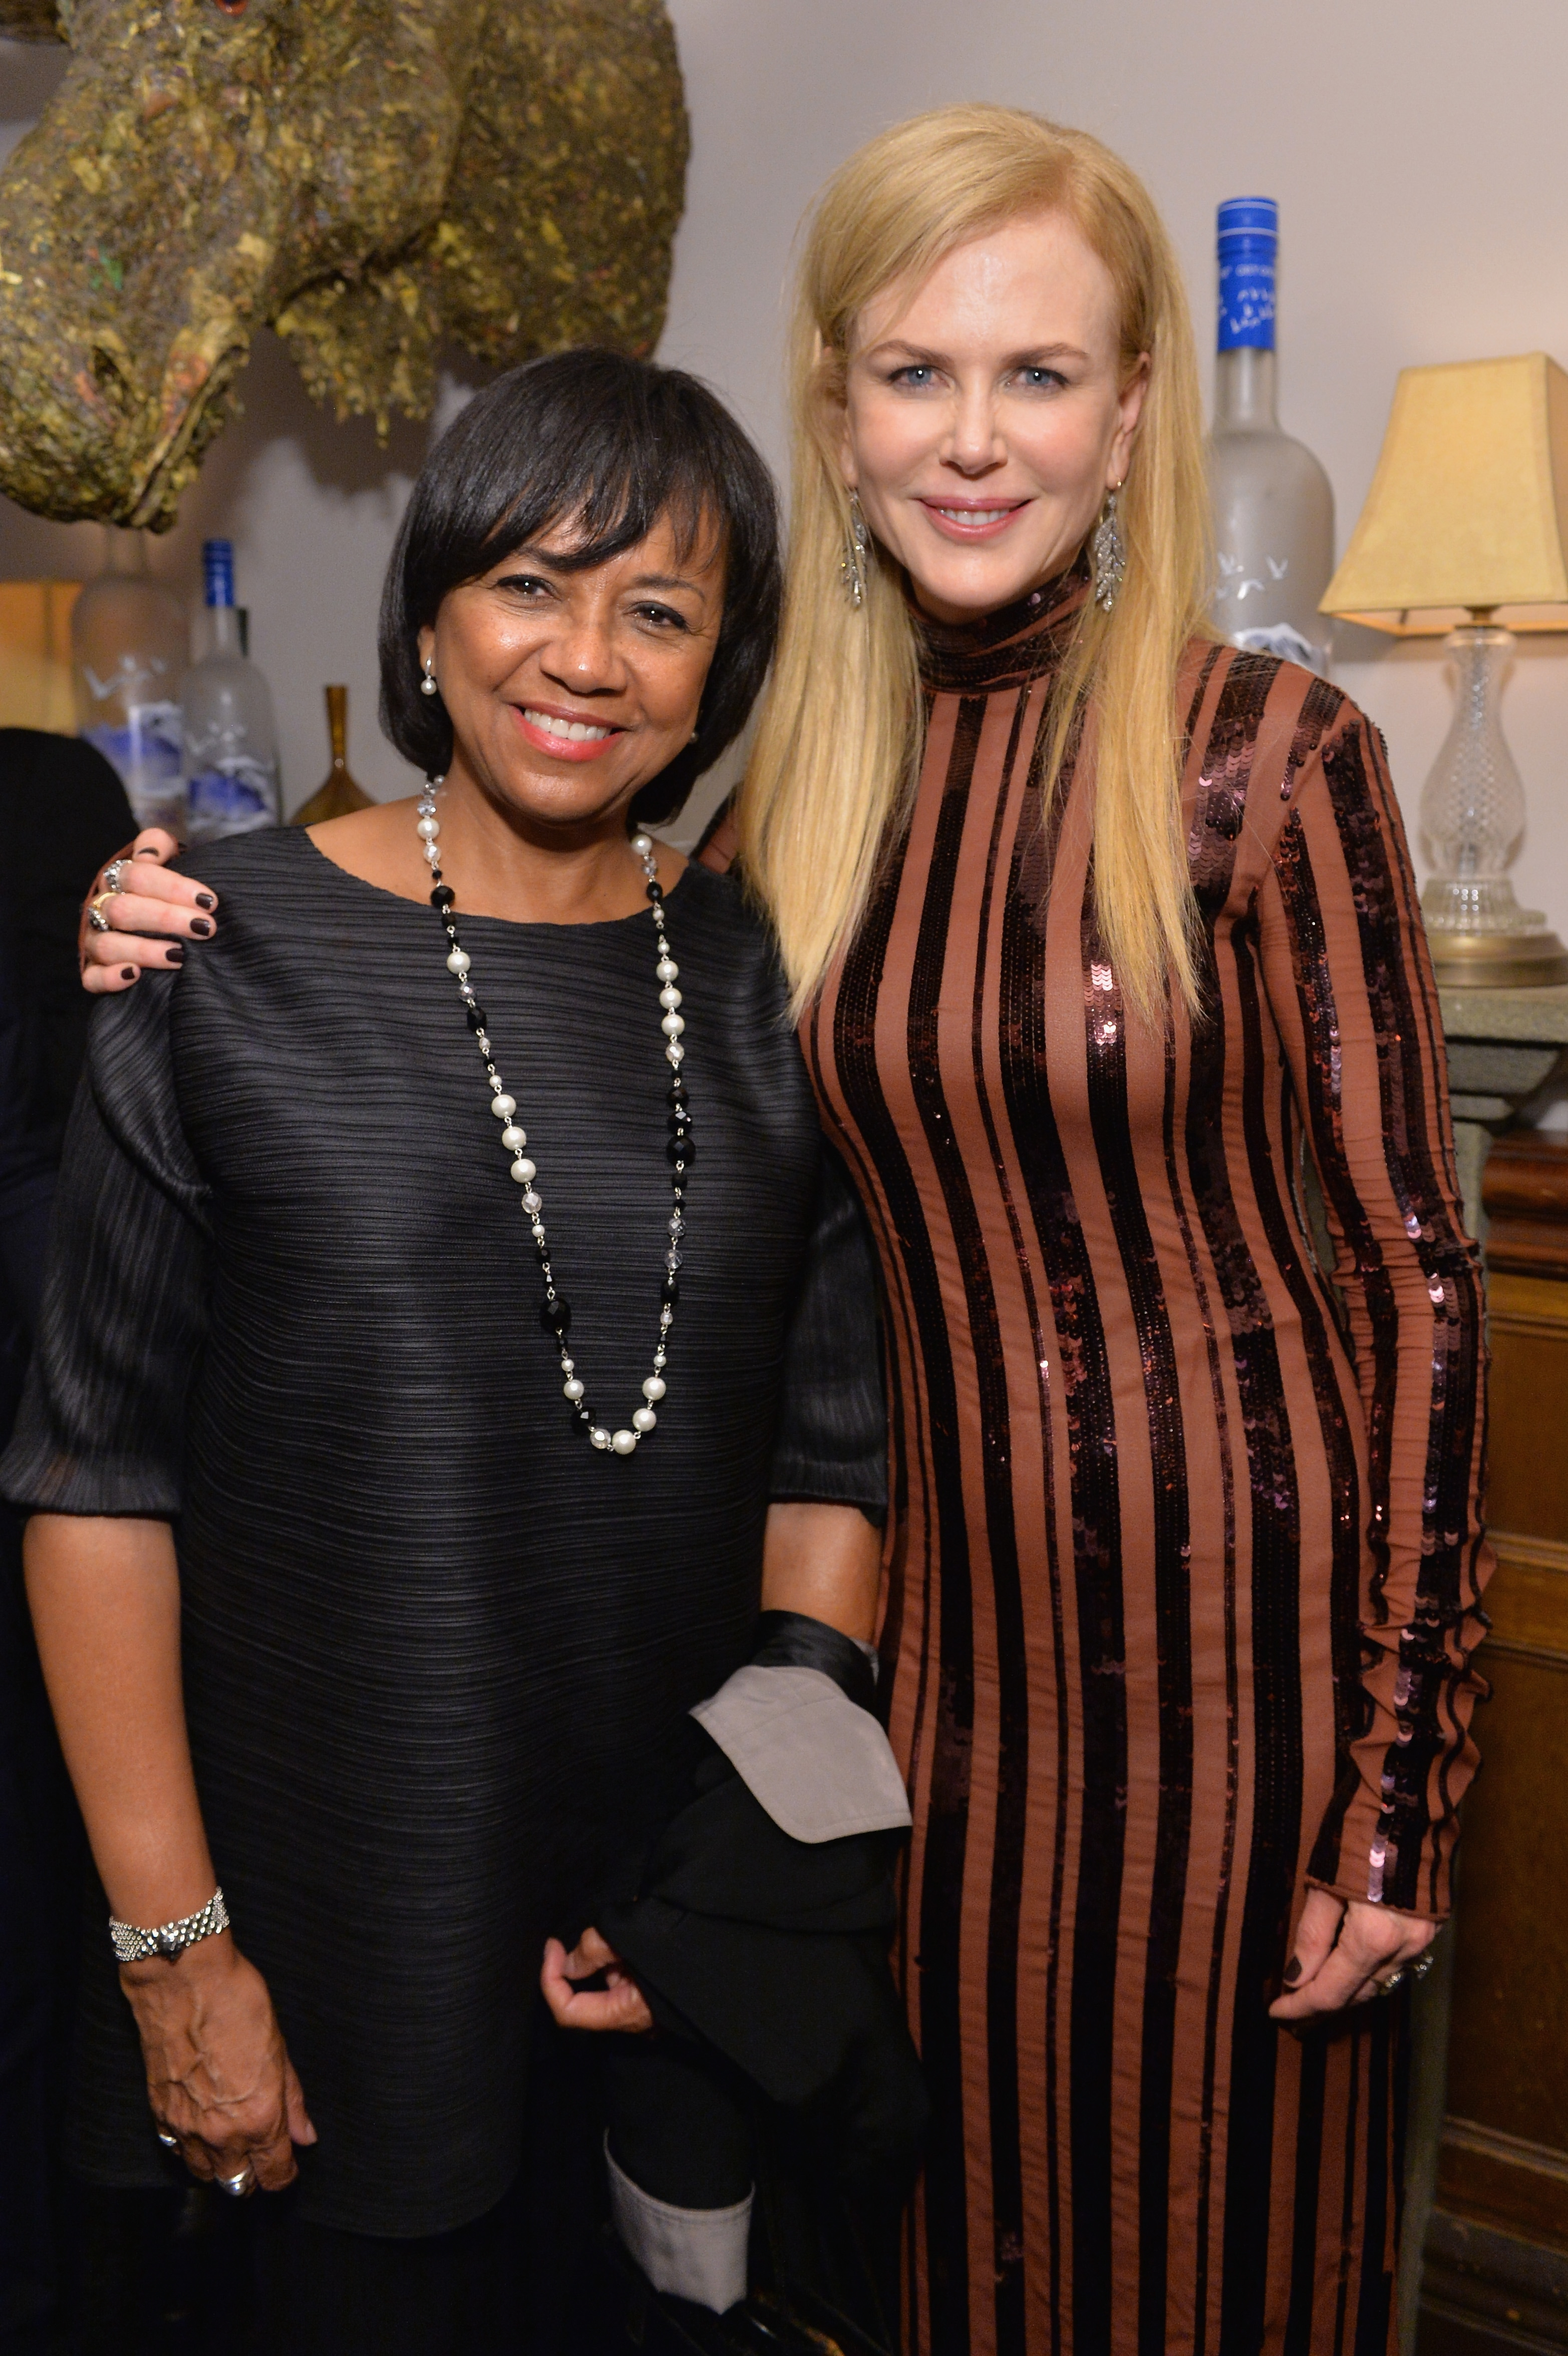 President of the Academy of Motion Picture Arts and Science Cheryl Boone Isaacs and actress Nicole Kidman